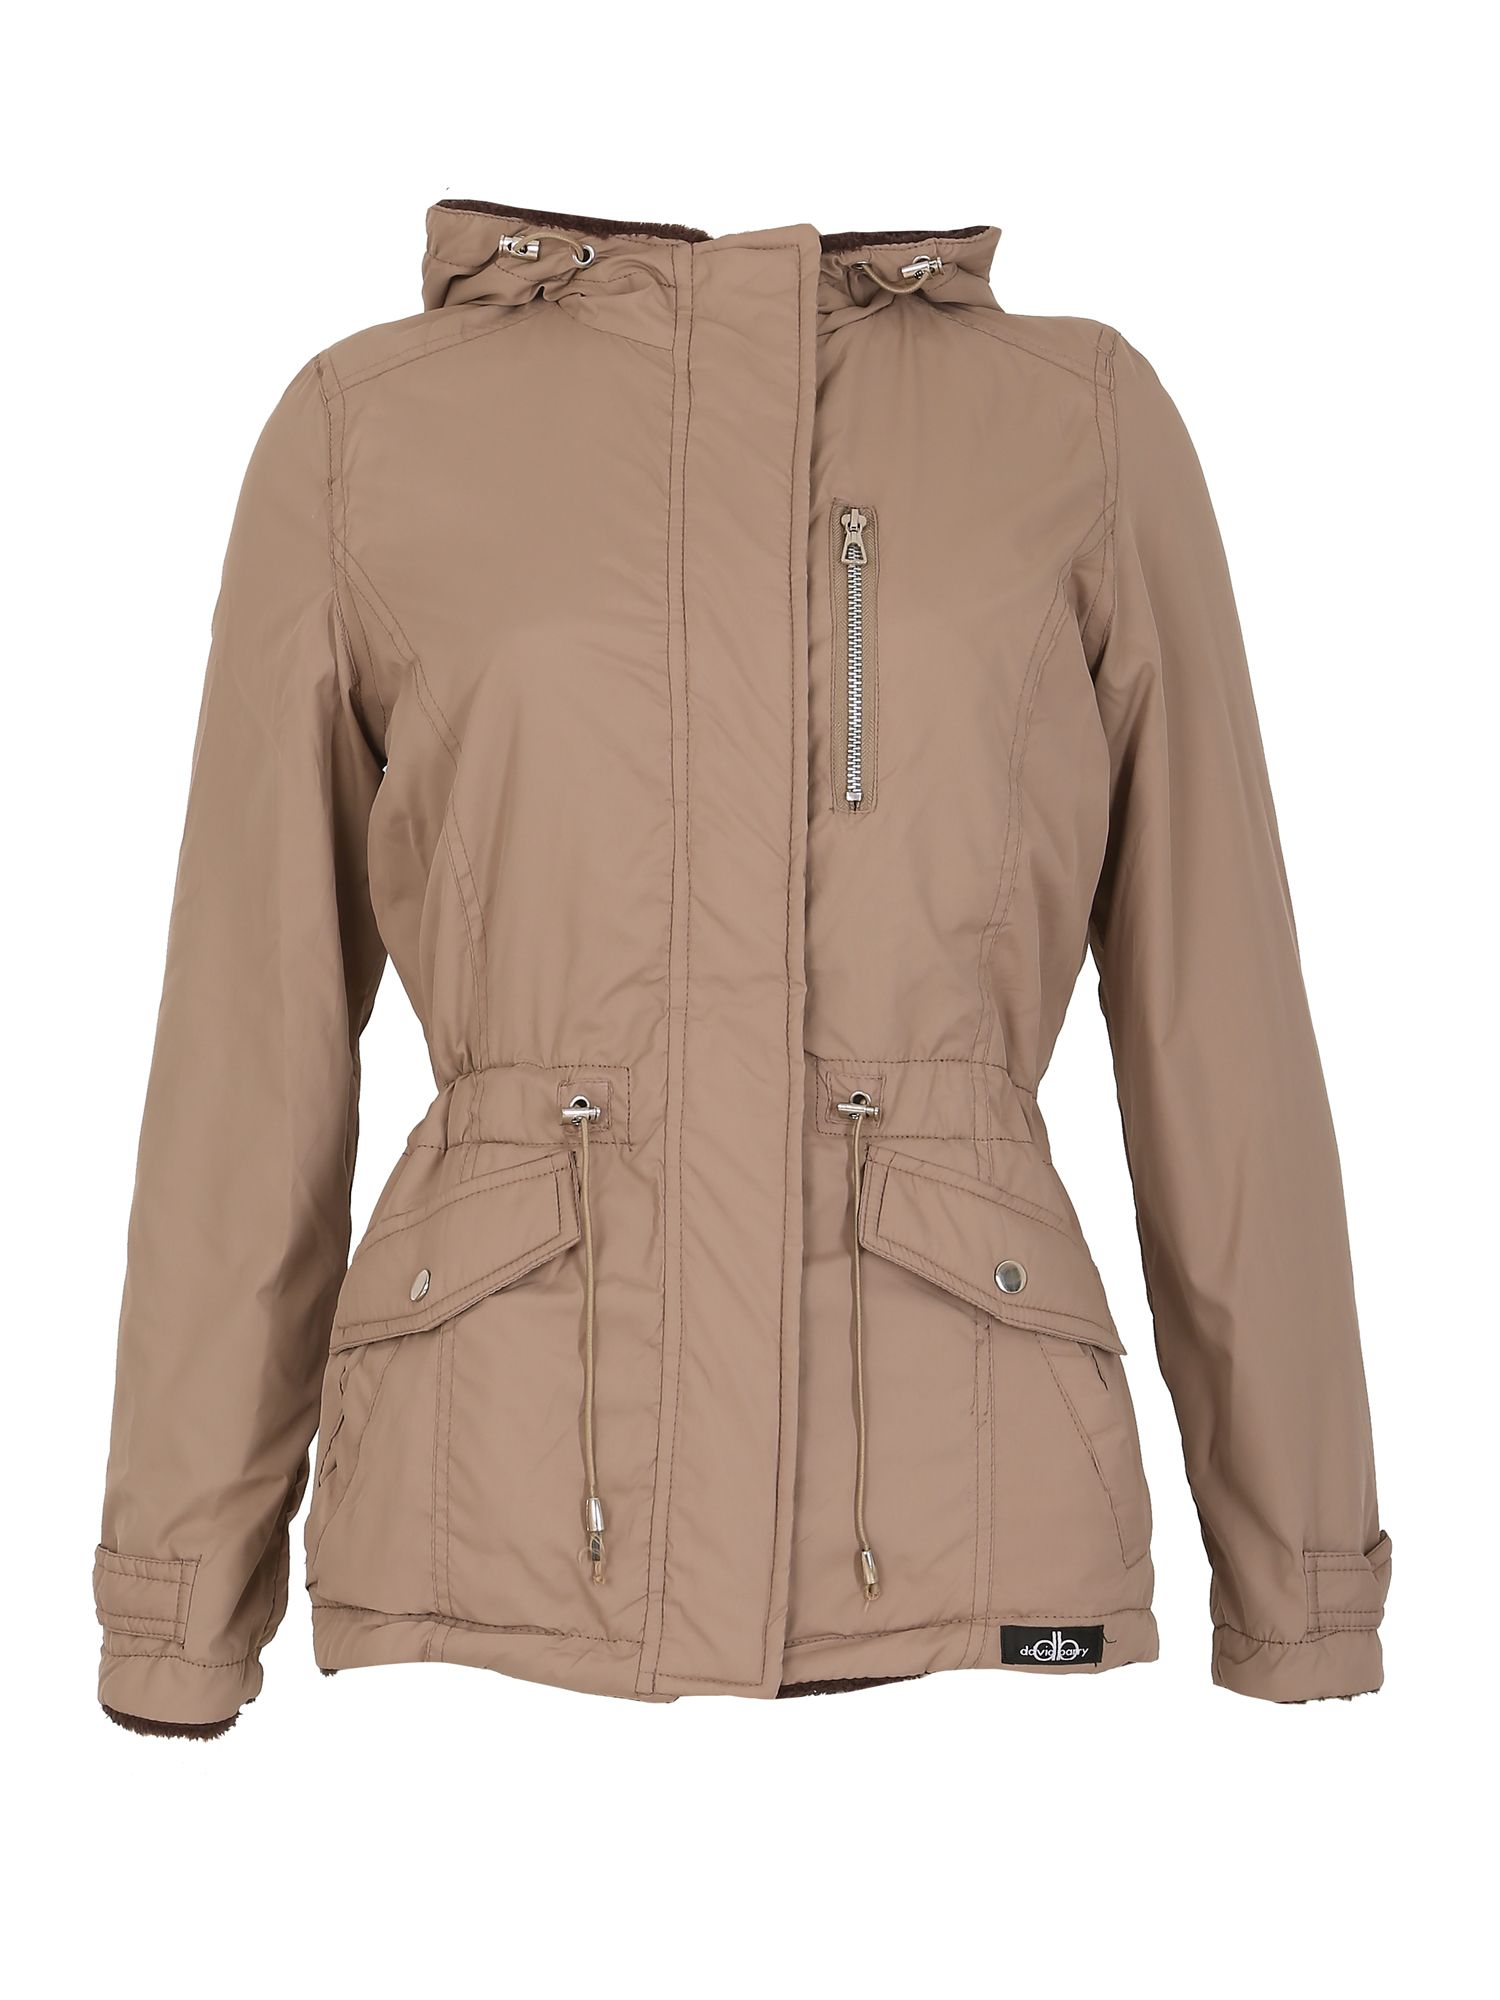 David Barry David Barry Reversible Multi Pocket Jacket, Khaki